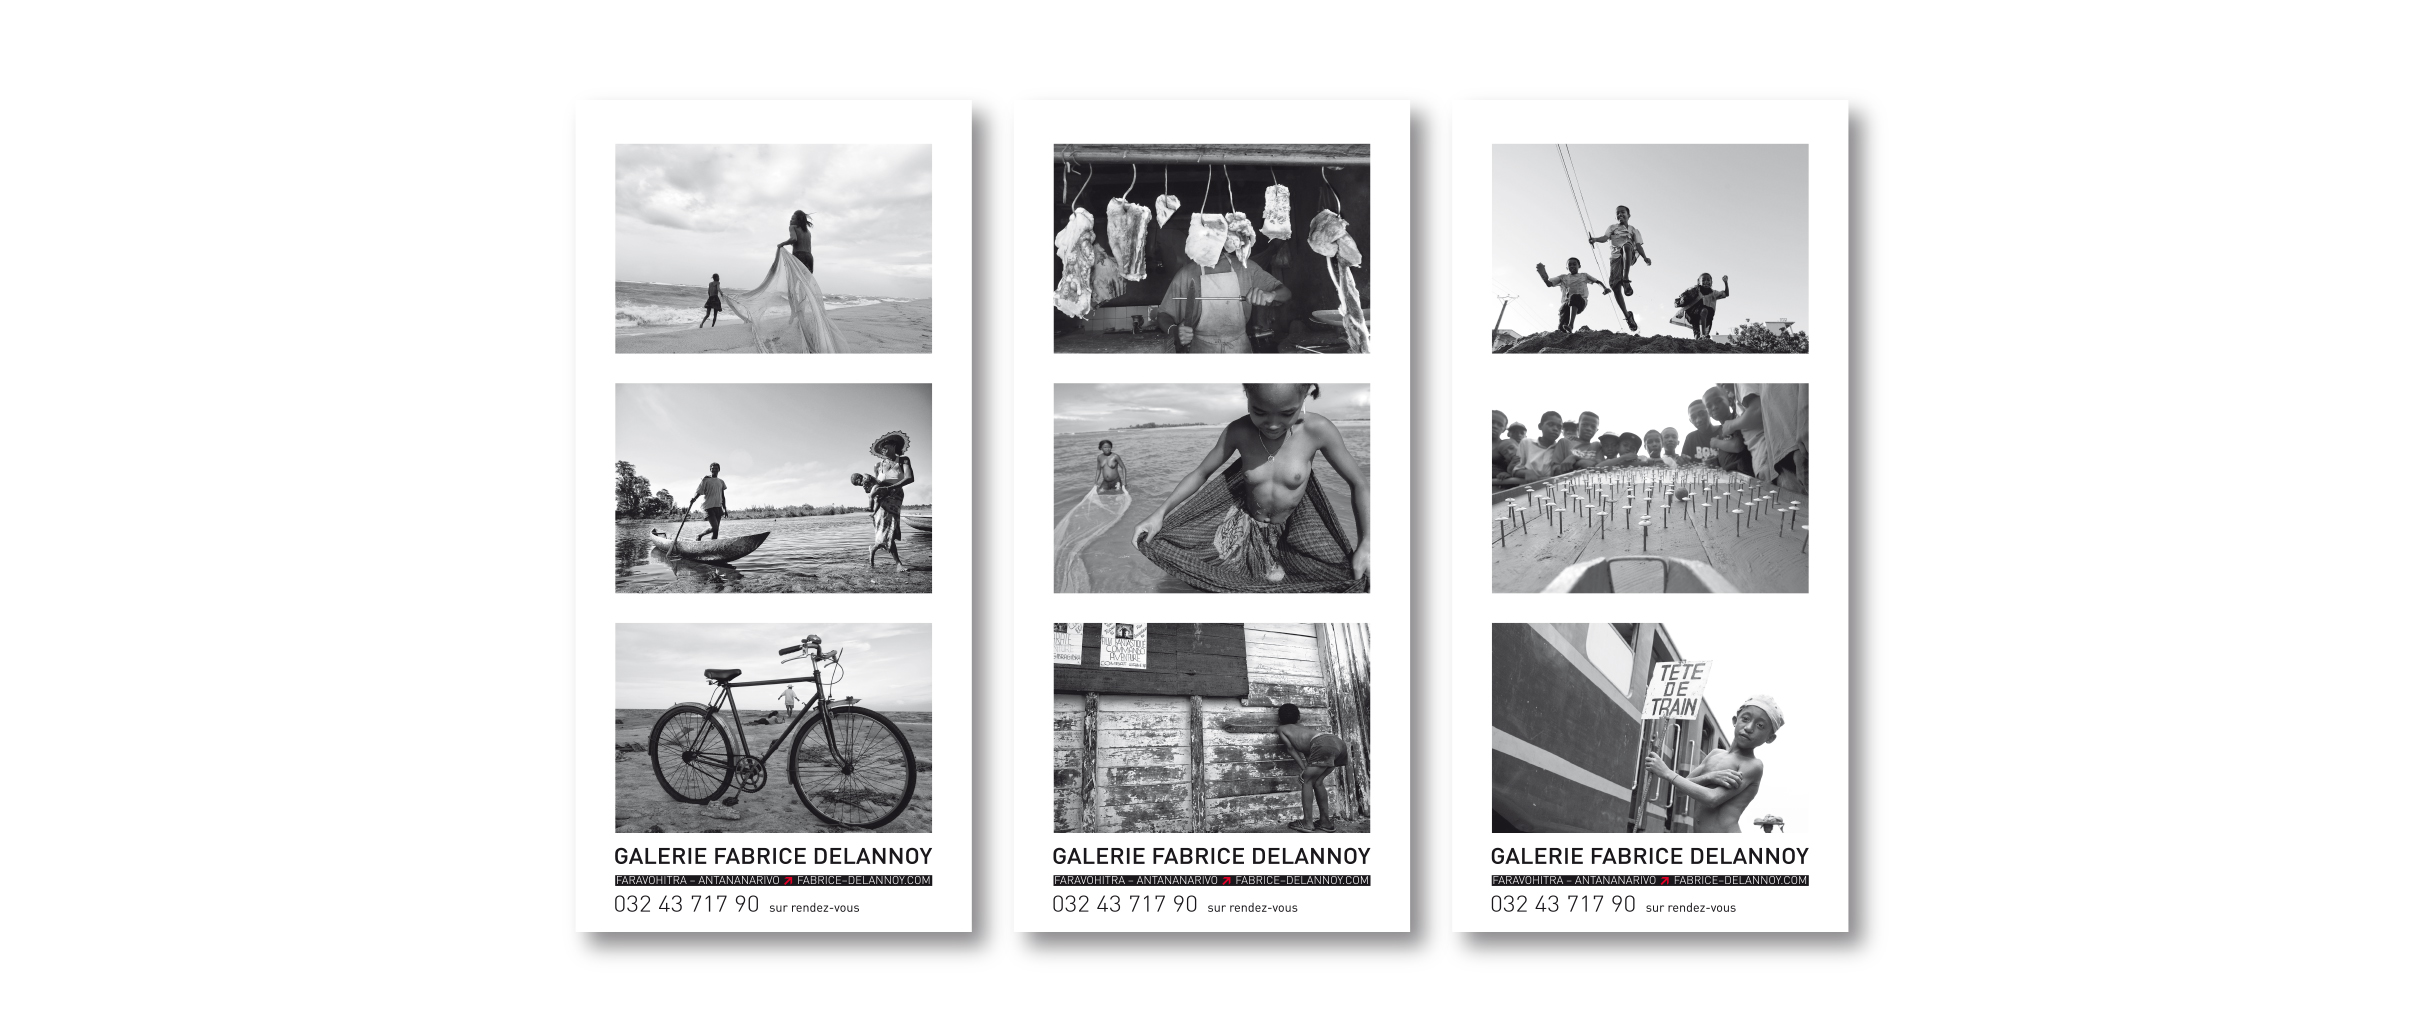 Photographe Gallerie Delannoy Flyers Tracts